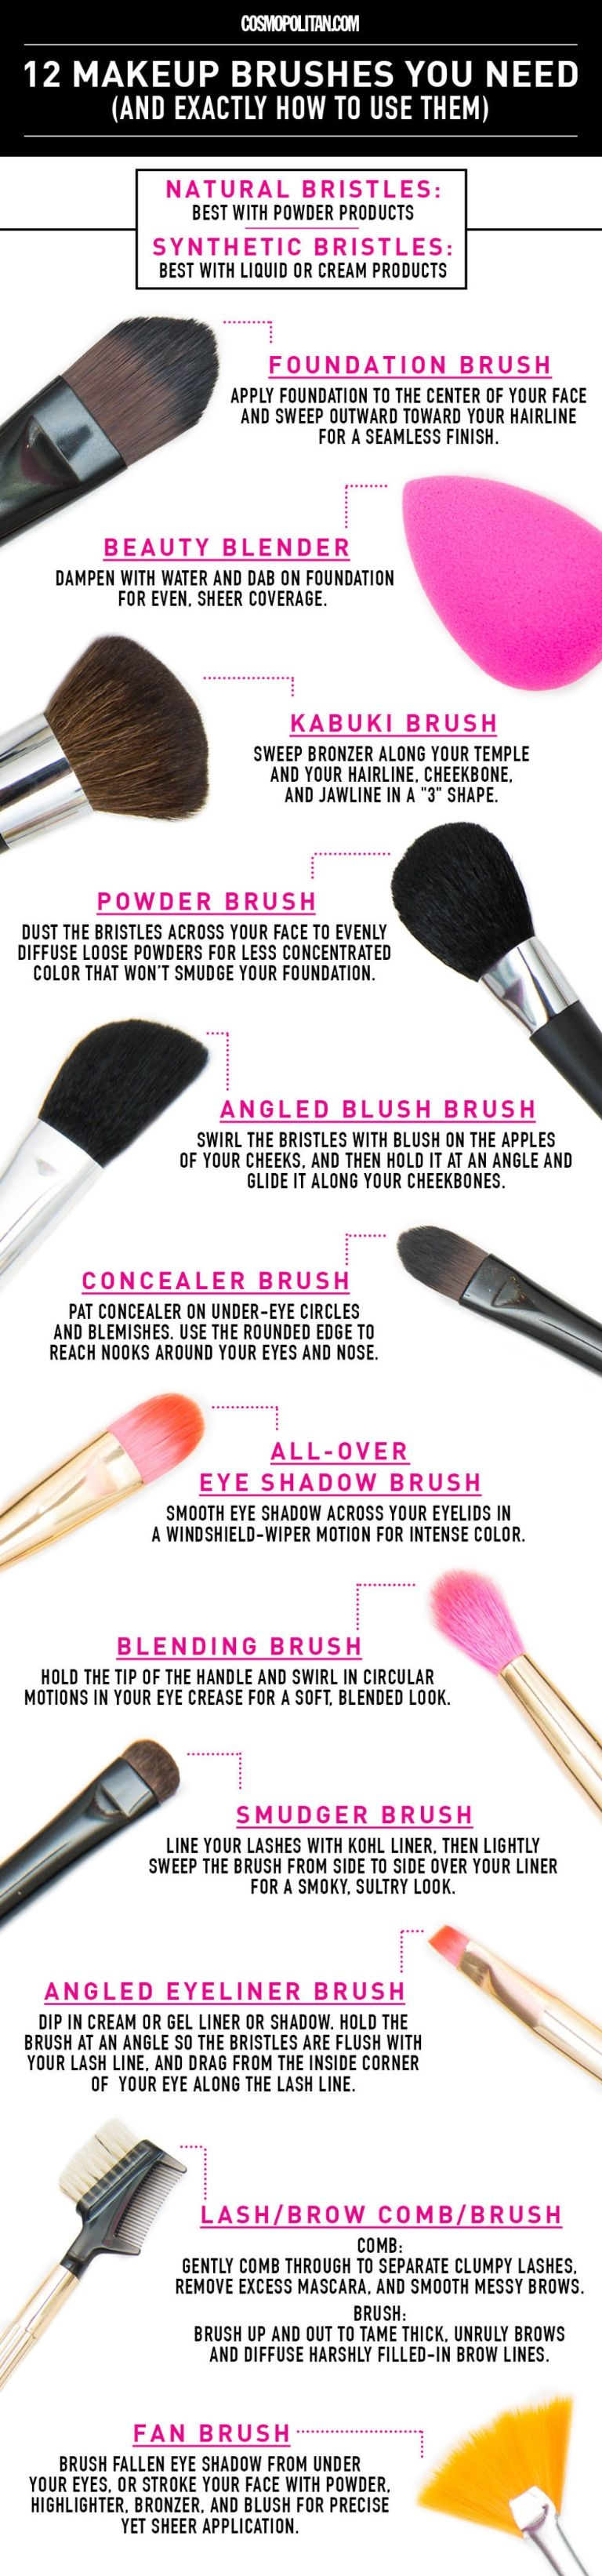 12 makeup brushes you need